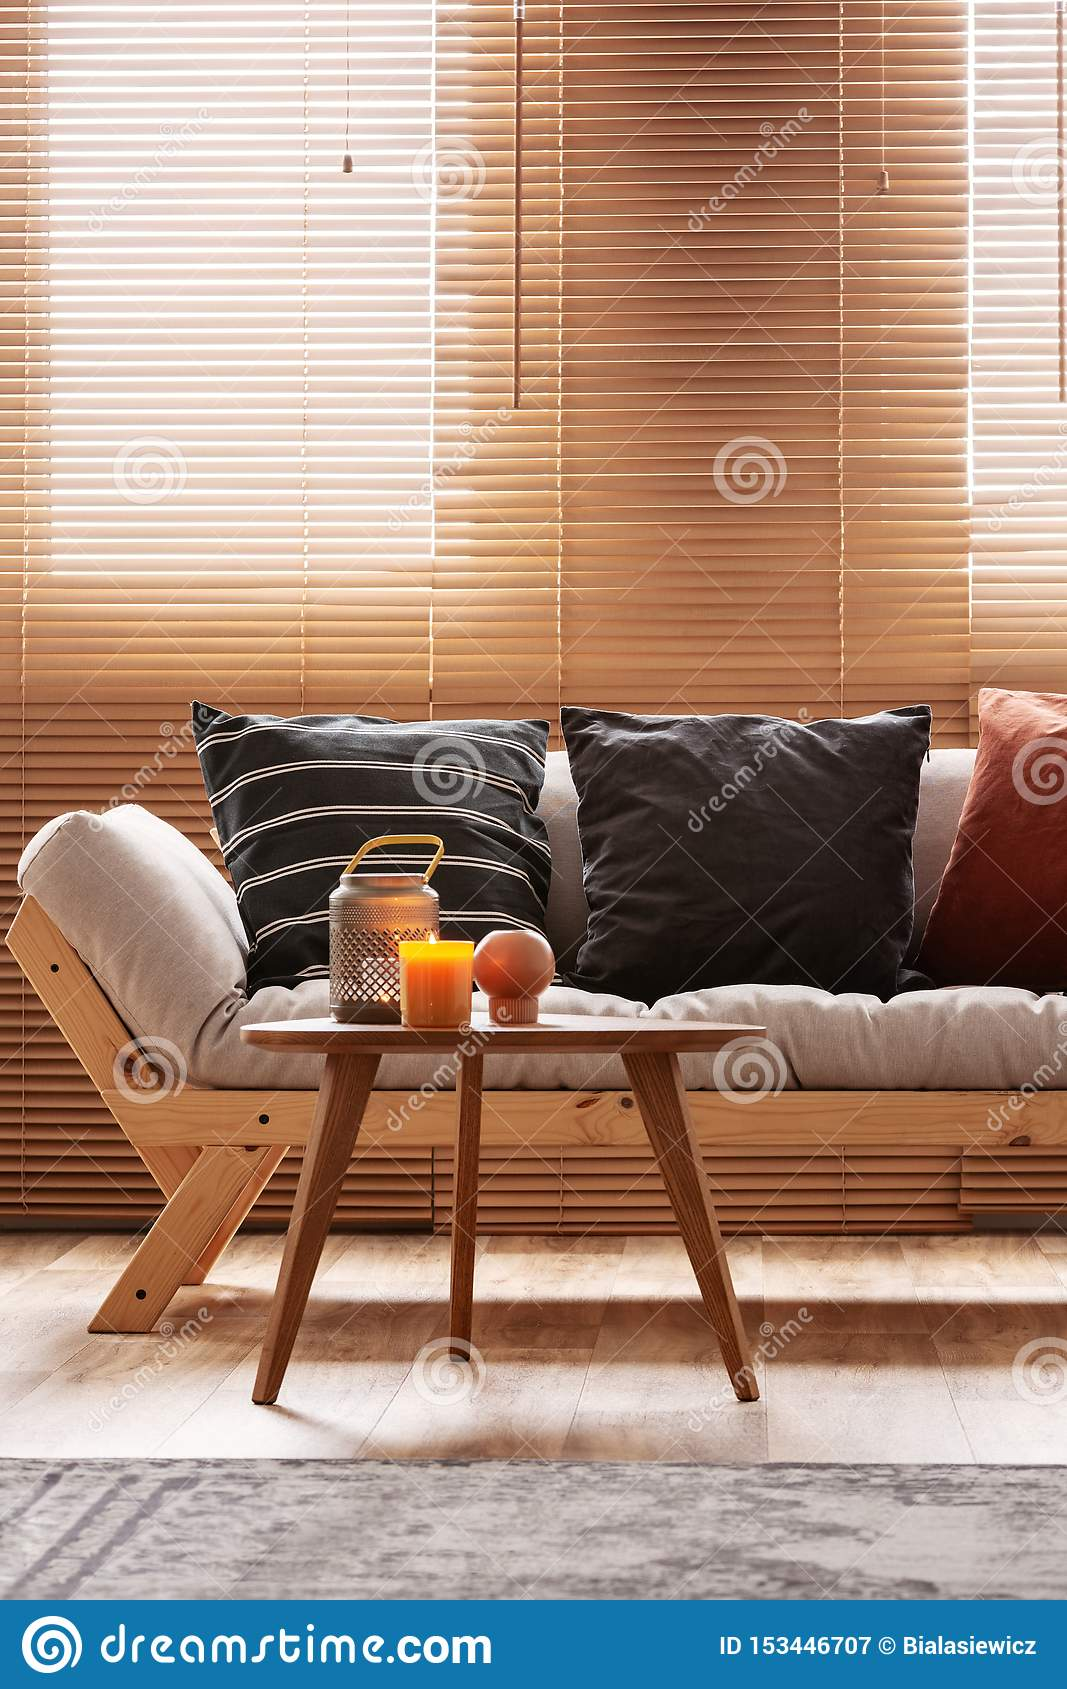 Tremendous Burgundy Black And Striped Pillows On Beige Living Room Ibusinesslaw Wood Chair Design Ideas Ibusinesslaworg